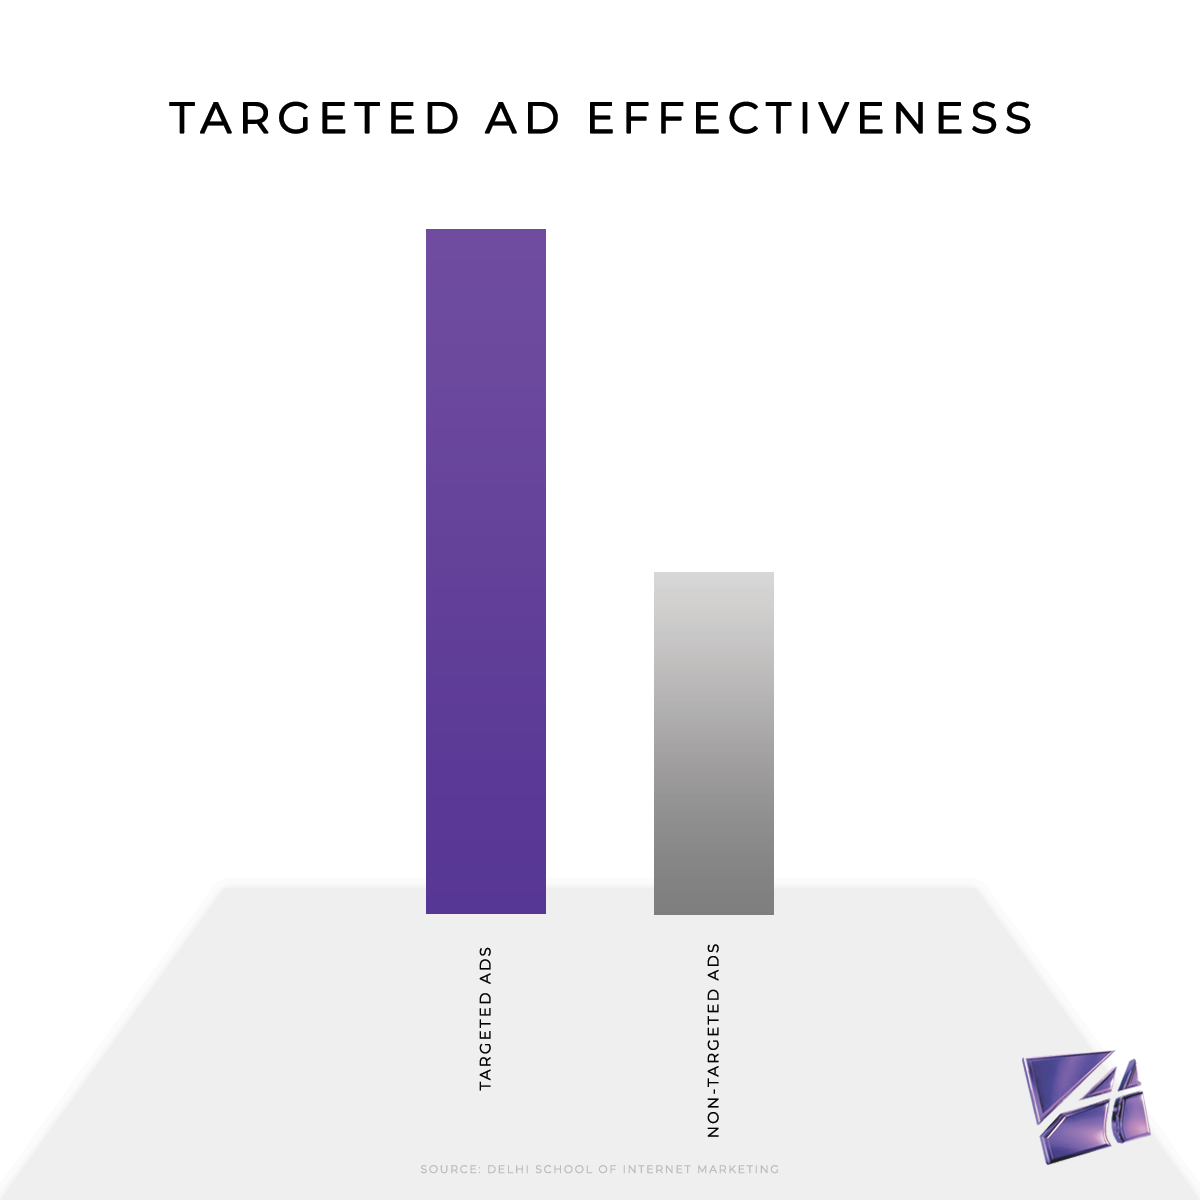 Effectiveness of Targeted Ads